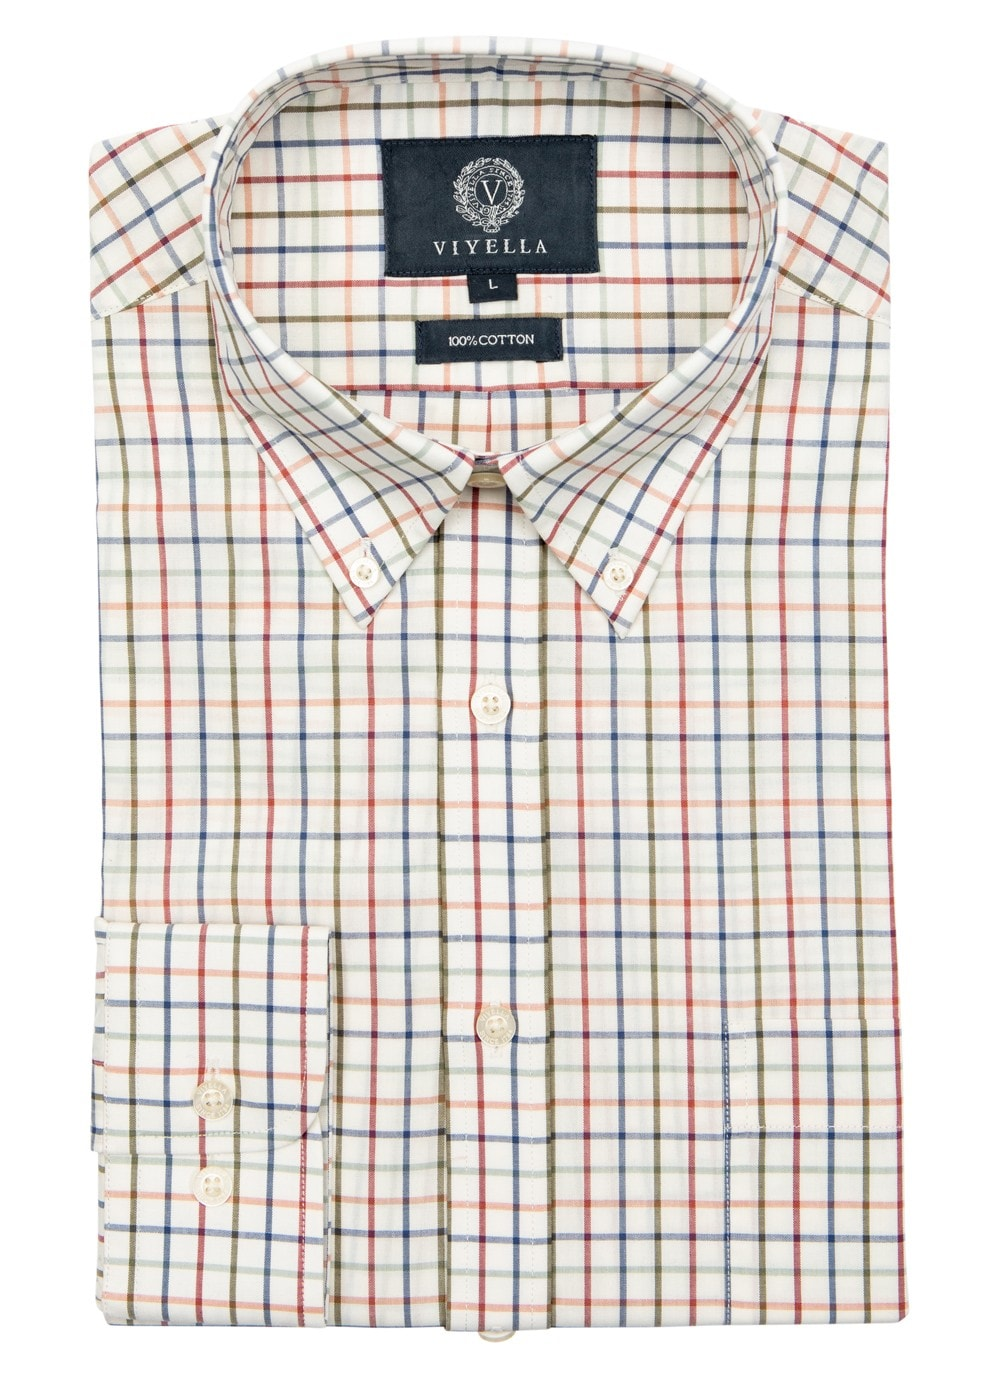 Viyella Classic Tattersall Shirt Mens From A Hume Uk